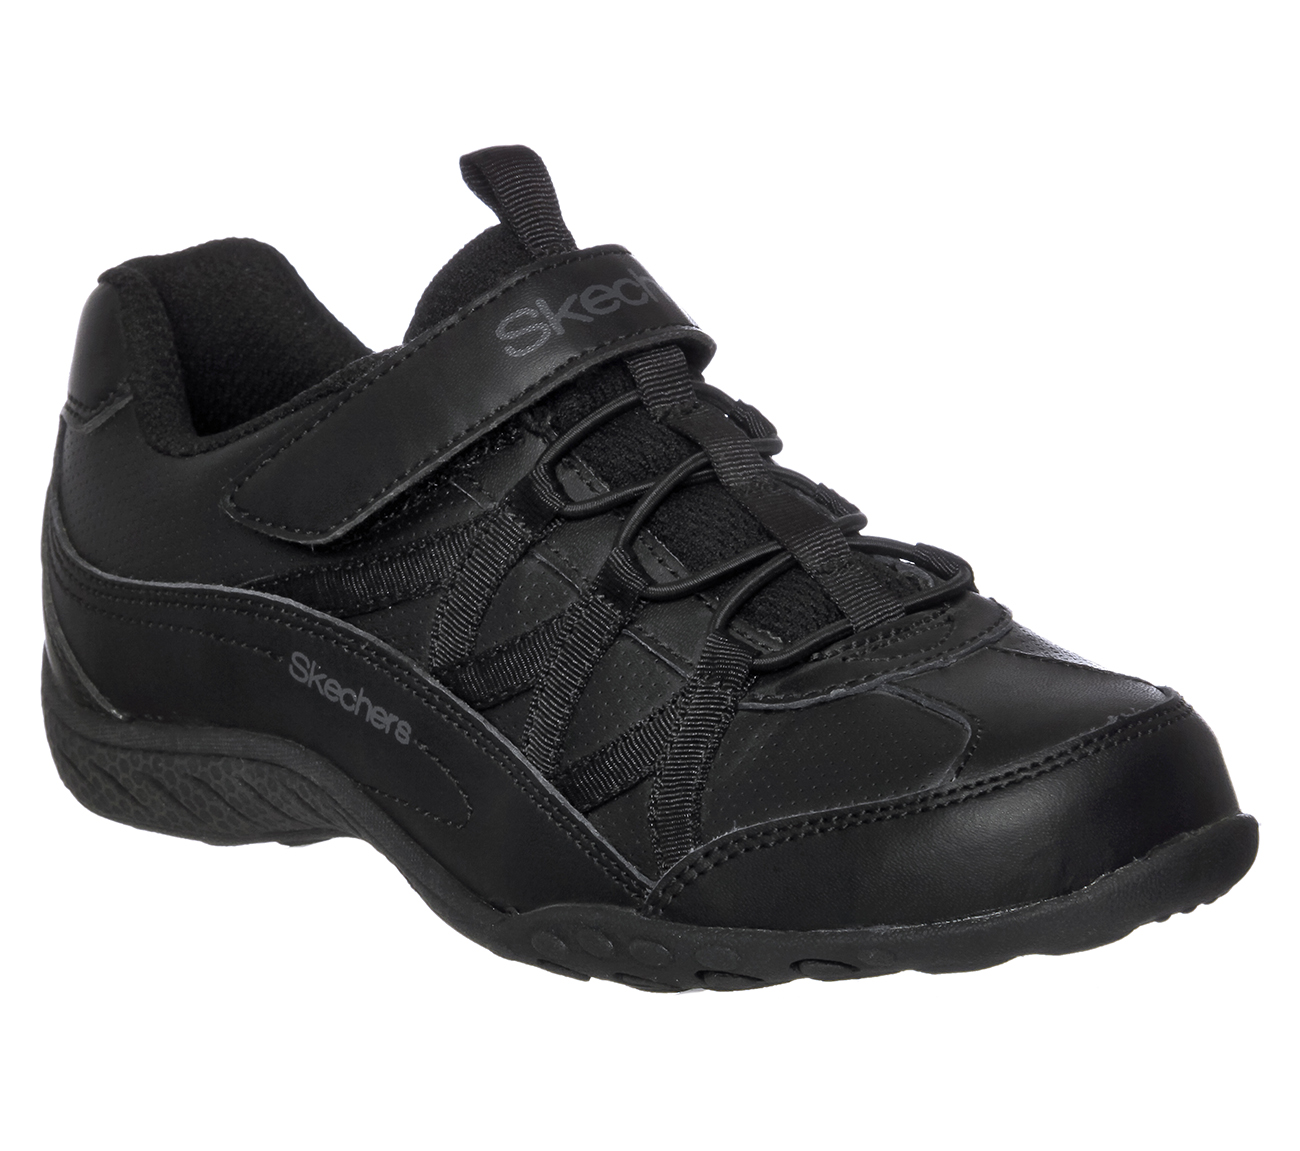 Comprar Zapatillas Skechers Chicas Relaxed Fit Breathe Easy